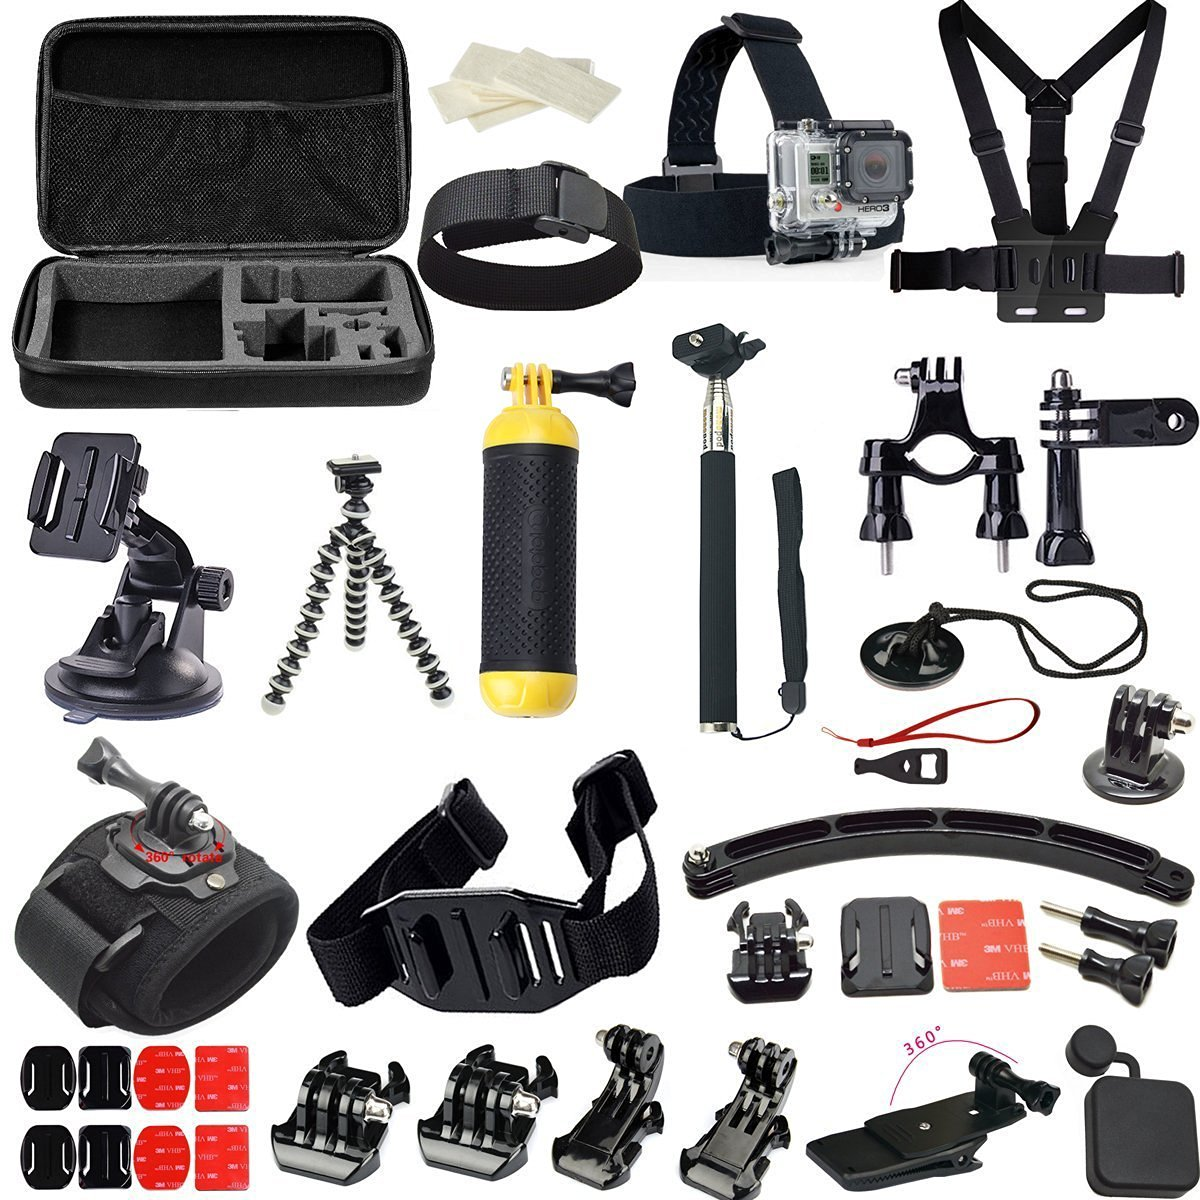 FeoconT Sports camera accessories set for go pro hero 5 4 3 kit mount for SJCAM